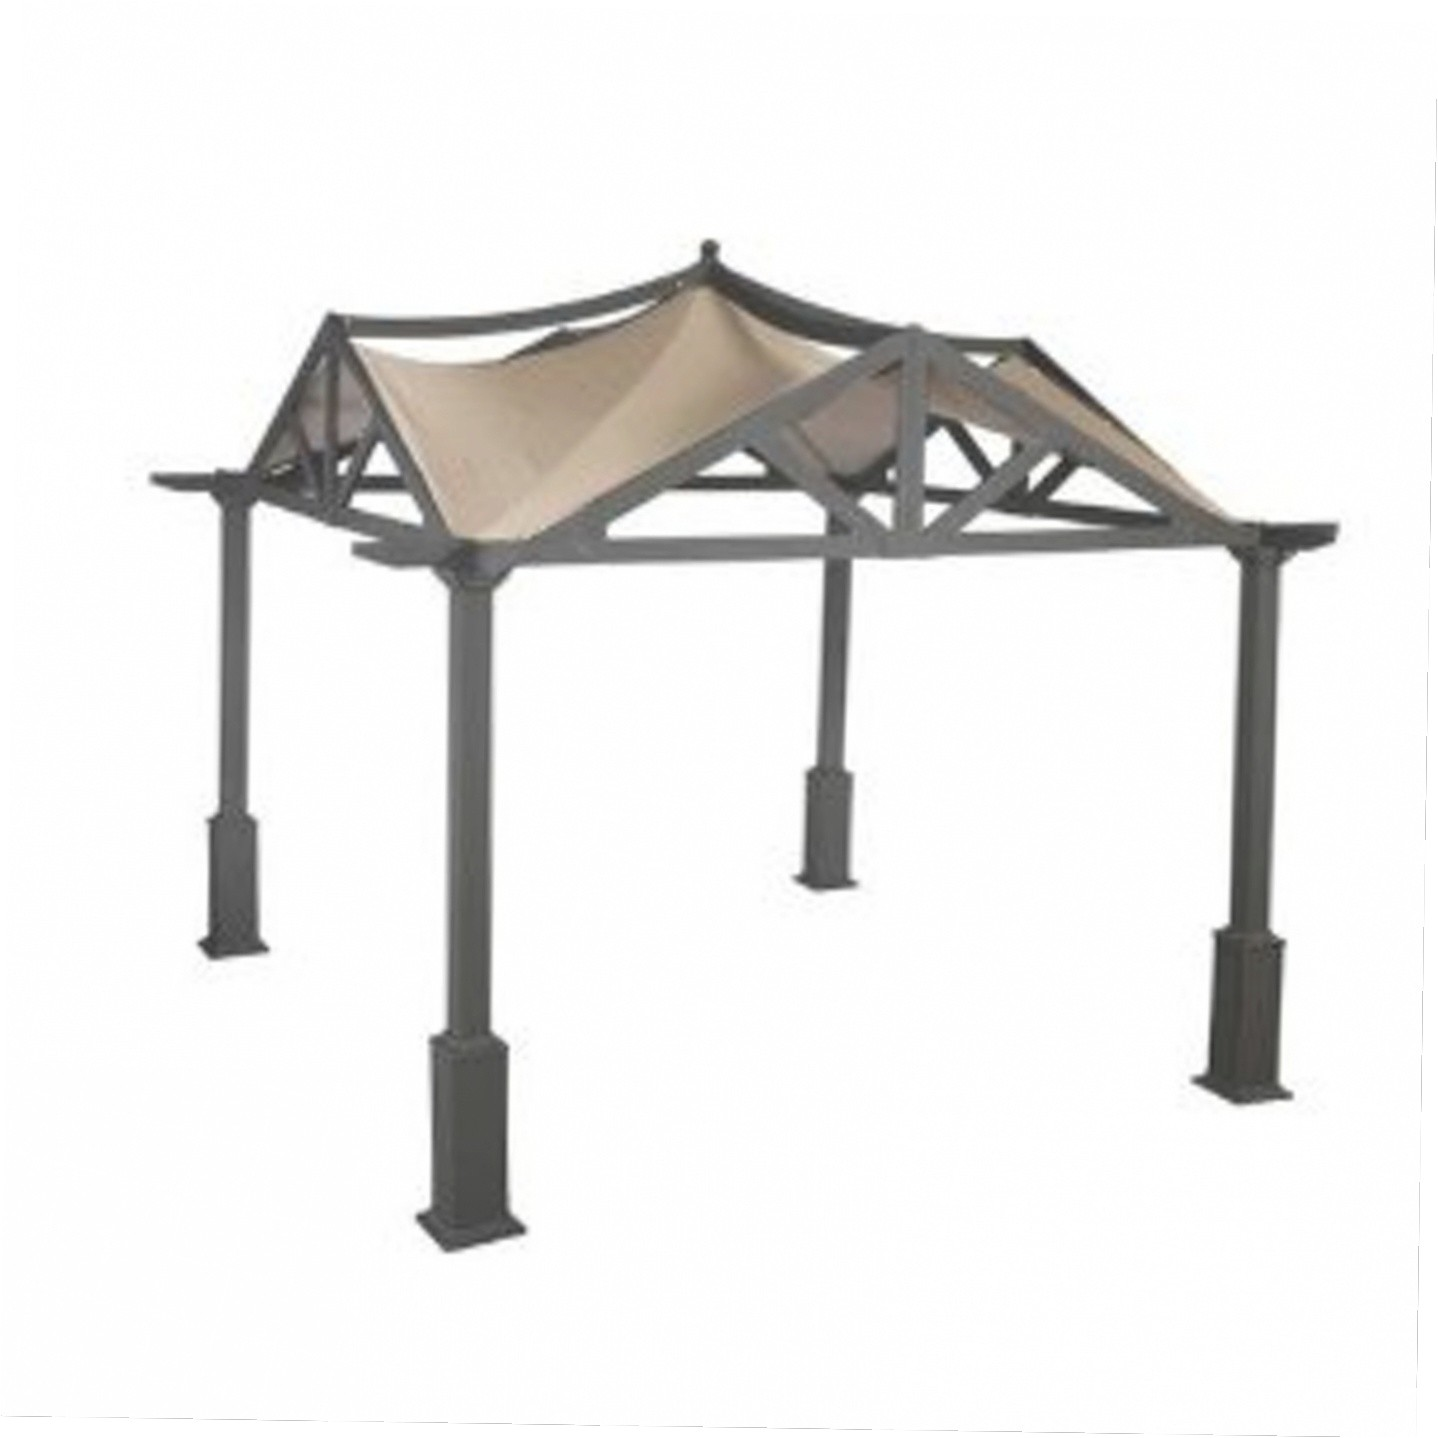 Allen and Roth Gazebo Replacement Parts Allen Roth Gazebo Replacement Parts Gazebo Ideas